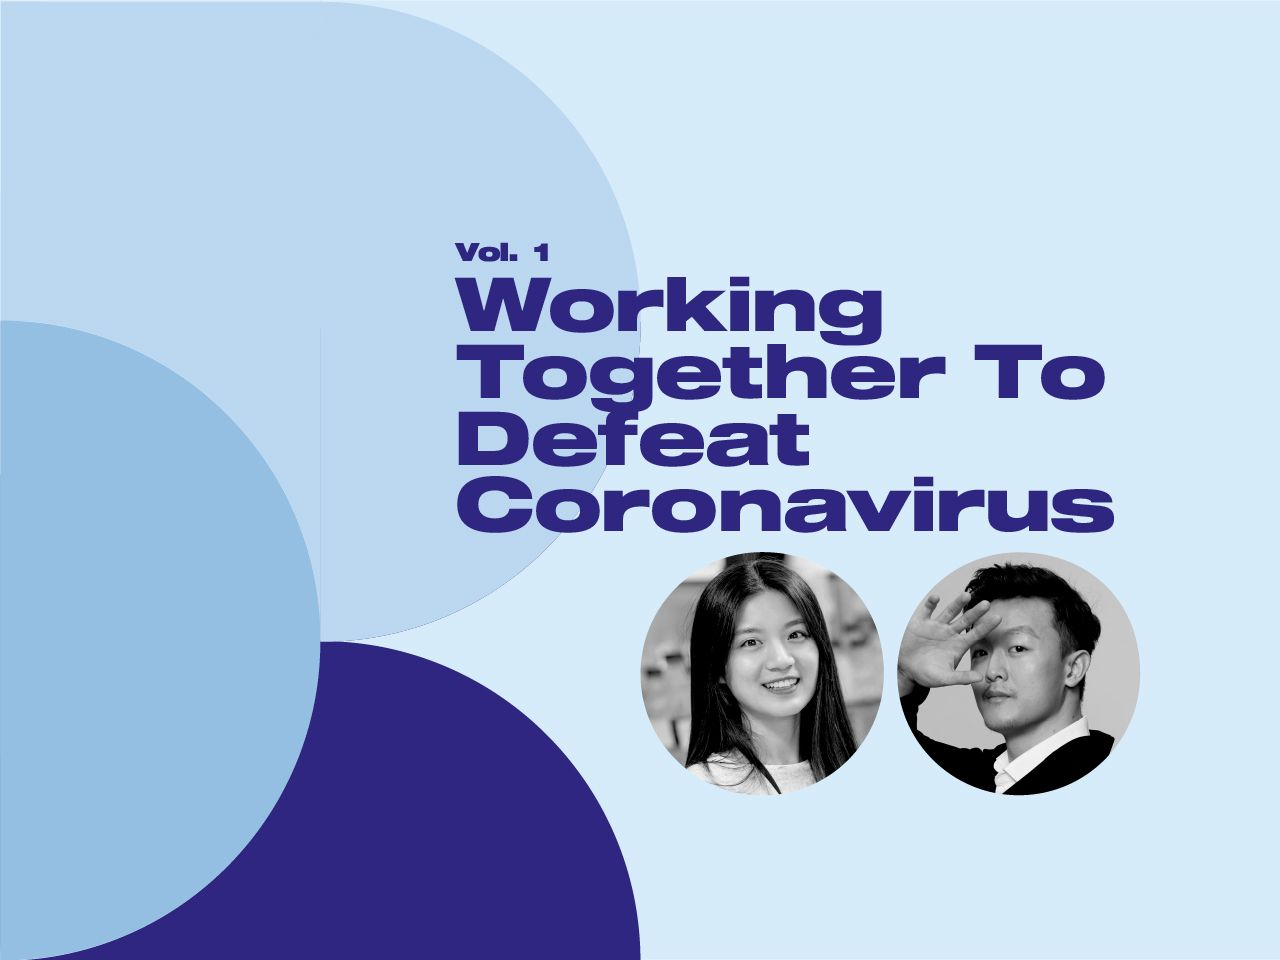 Cloud Talk: Working Together To Defeat Coronavirus